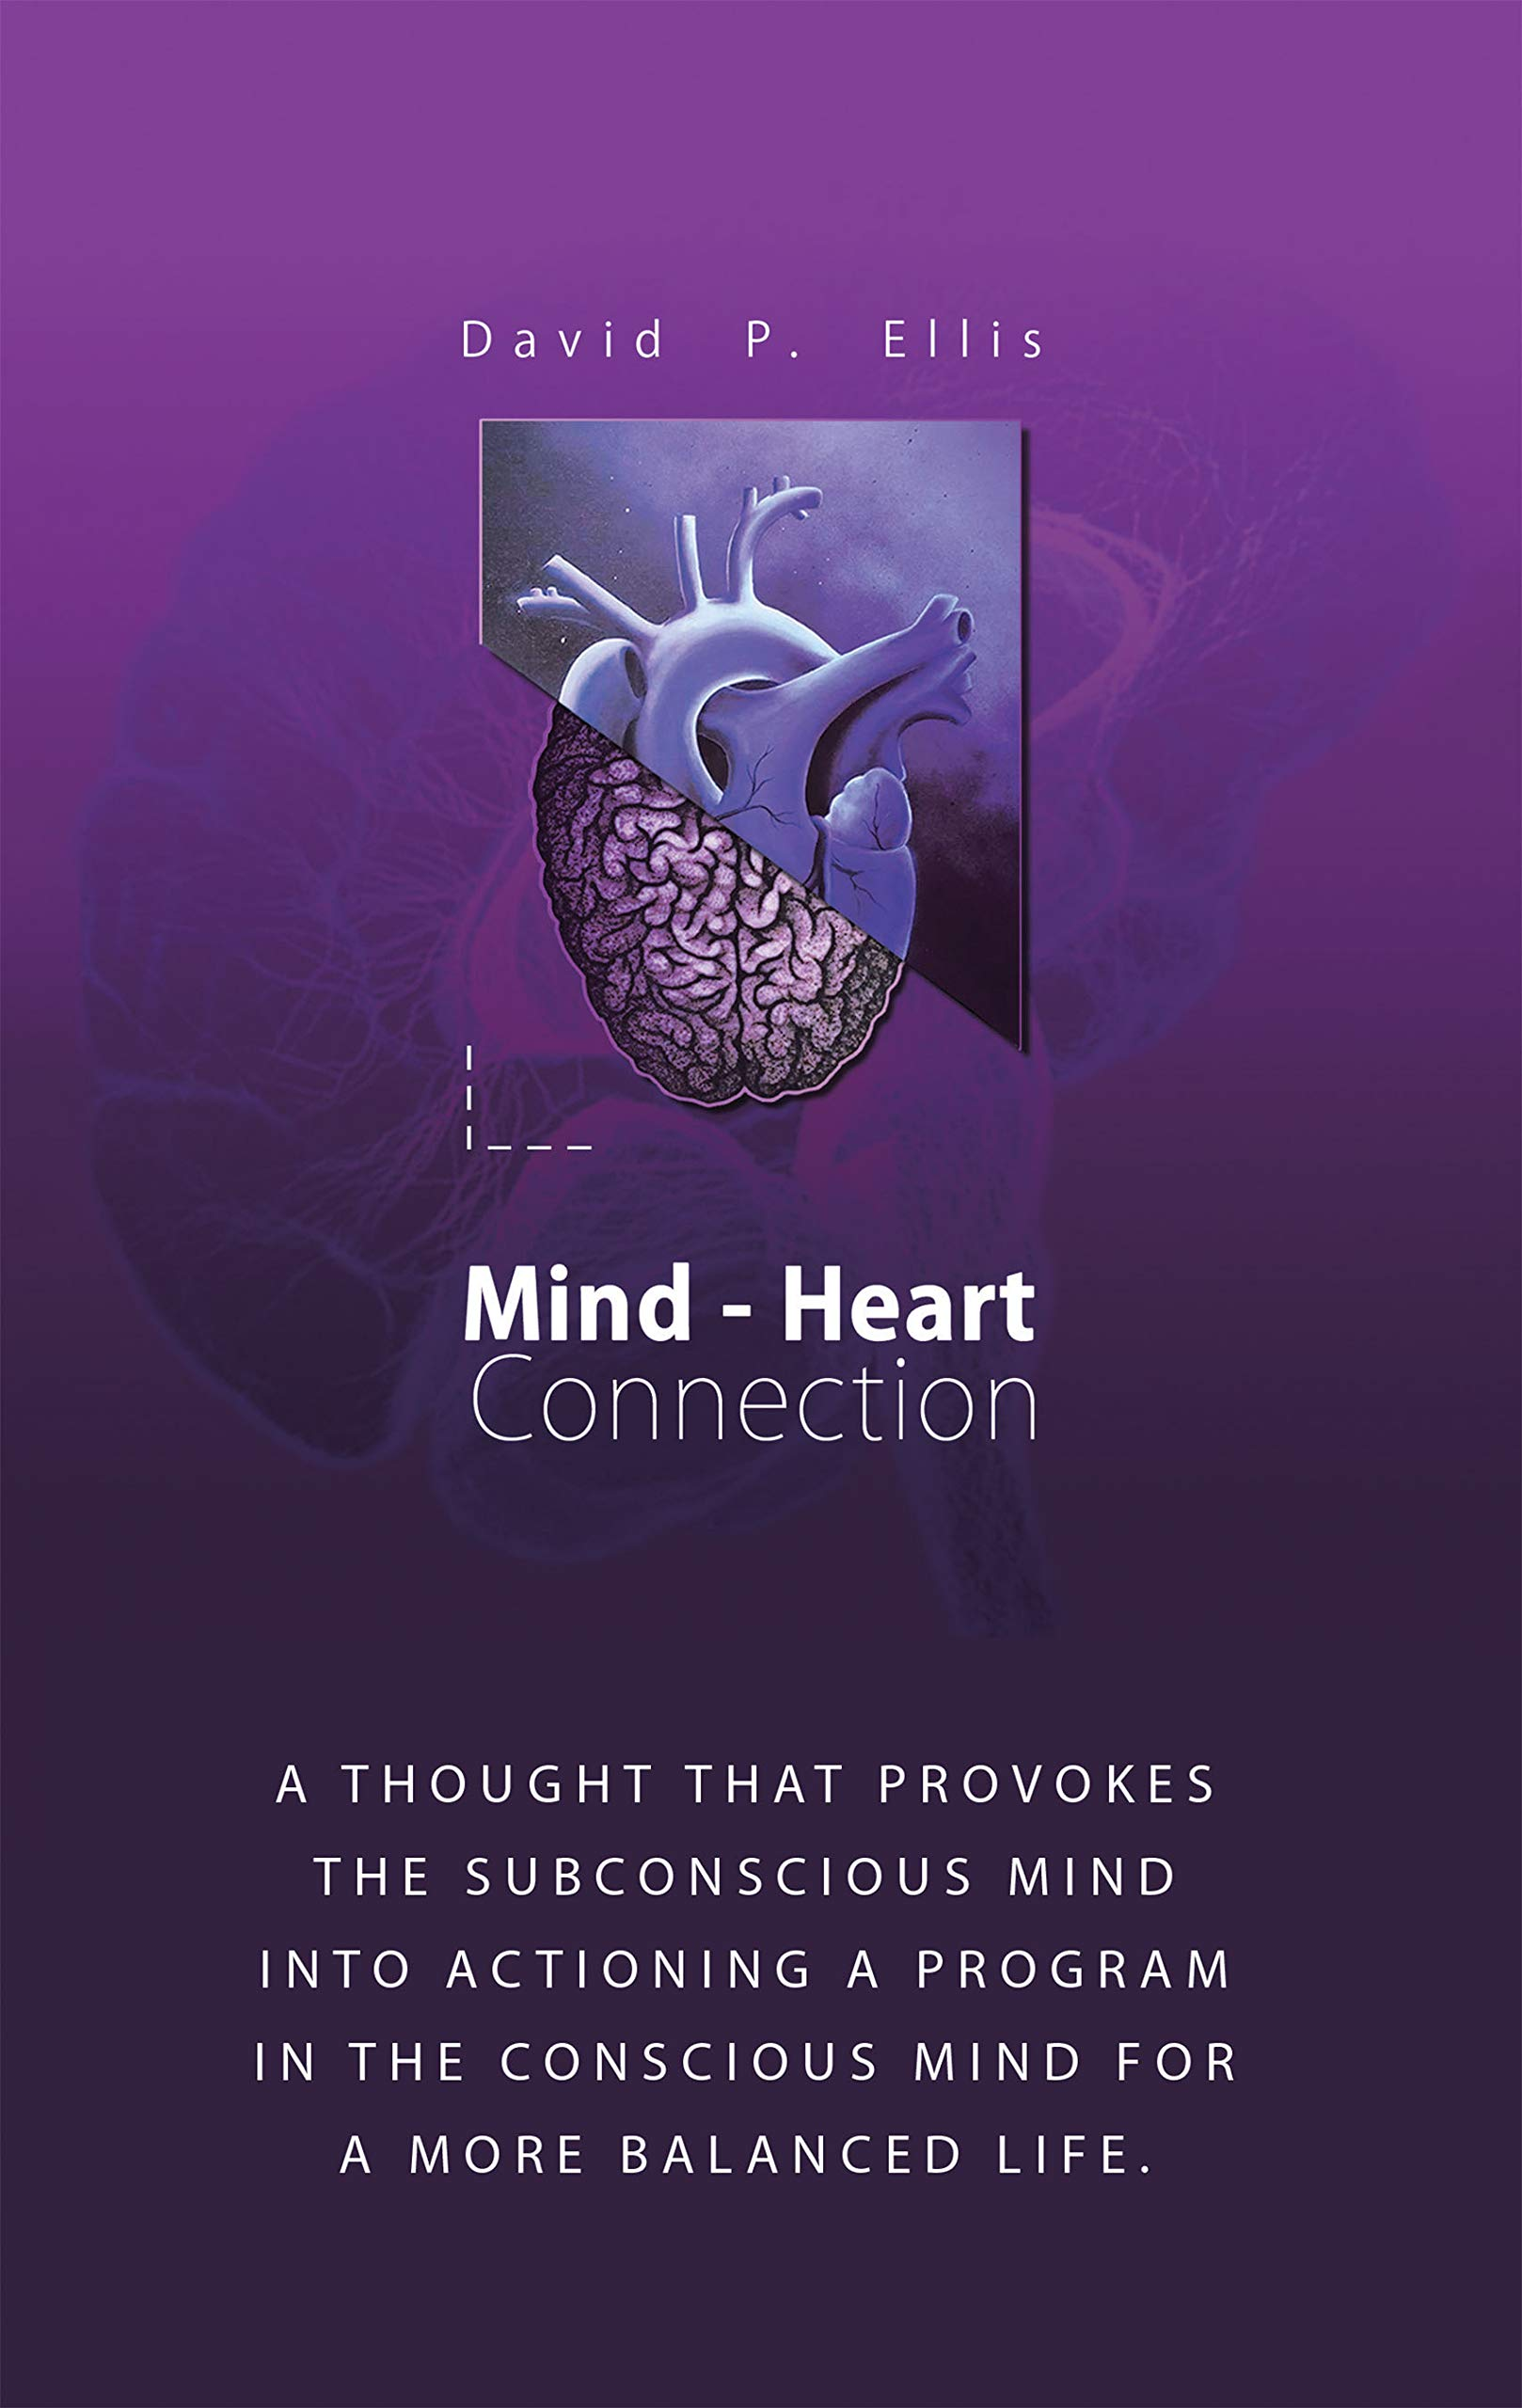 Mind-Heart Connection: A Thought That Provokes the Subconscious Mind into Actioning a Program in the Conscious Mind for a More Balanced Life.